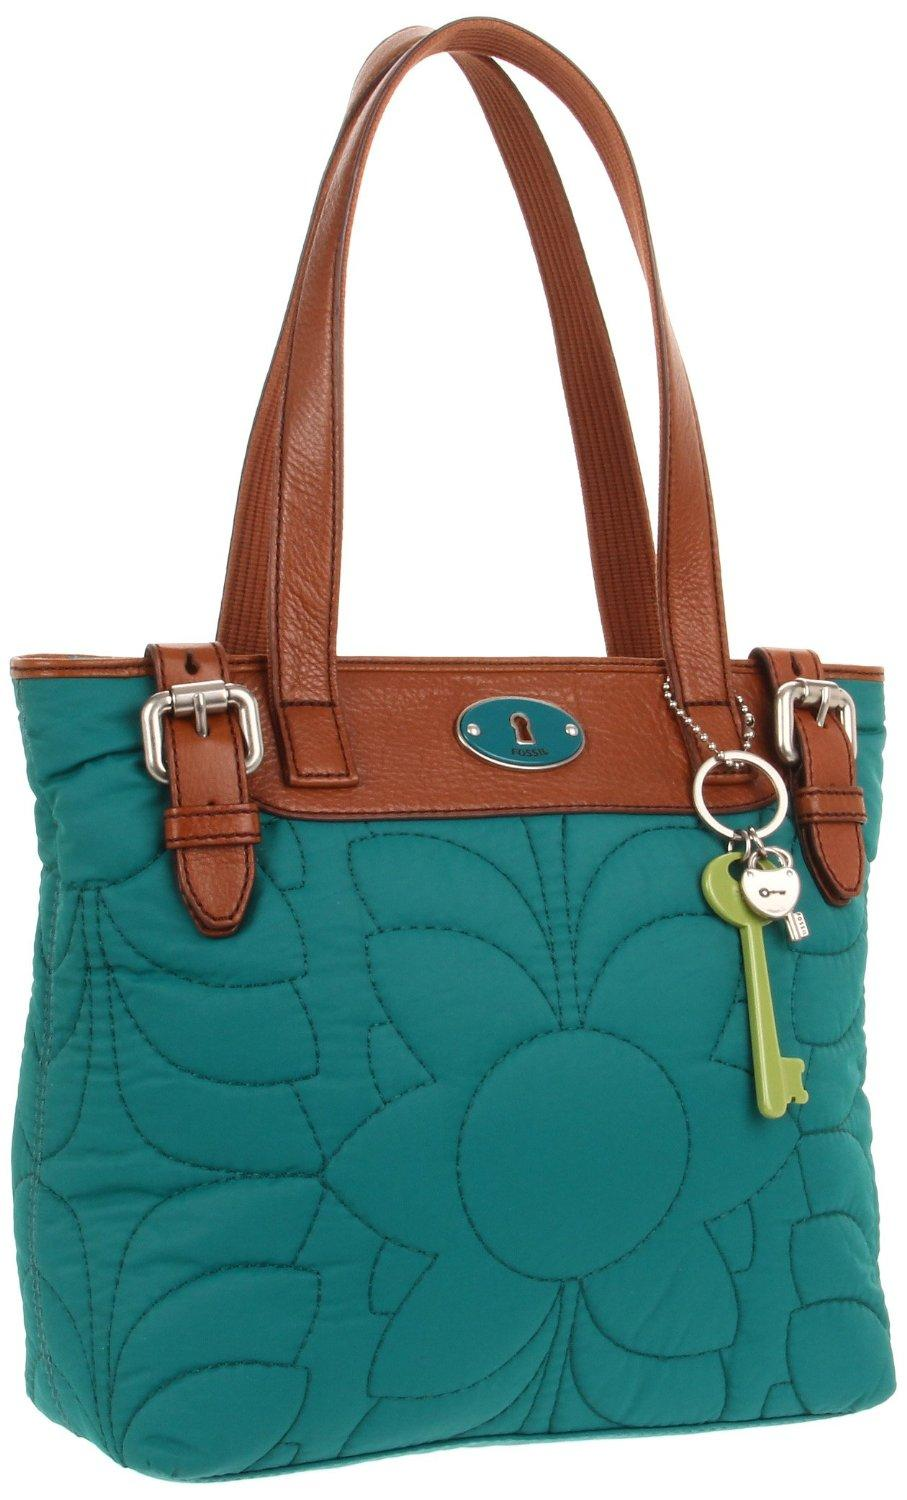 Discounted Fossil Handbags Tessa Satchel Blue Key Per Shopper Handbag Peacock